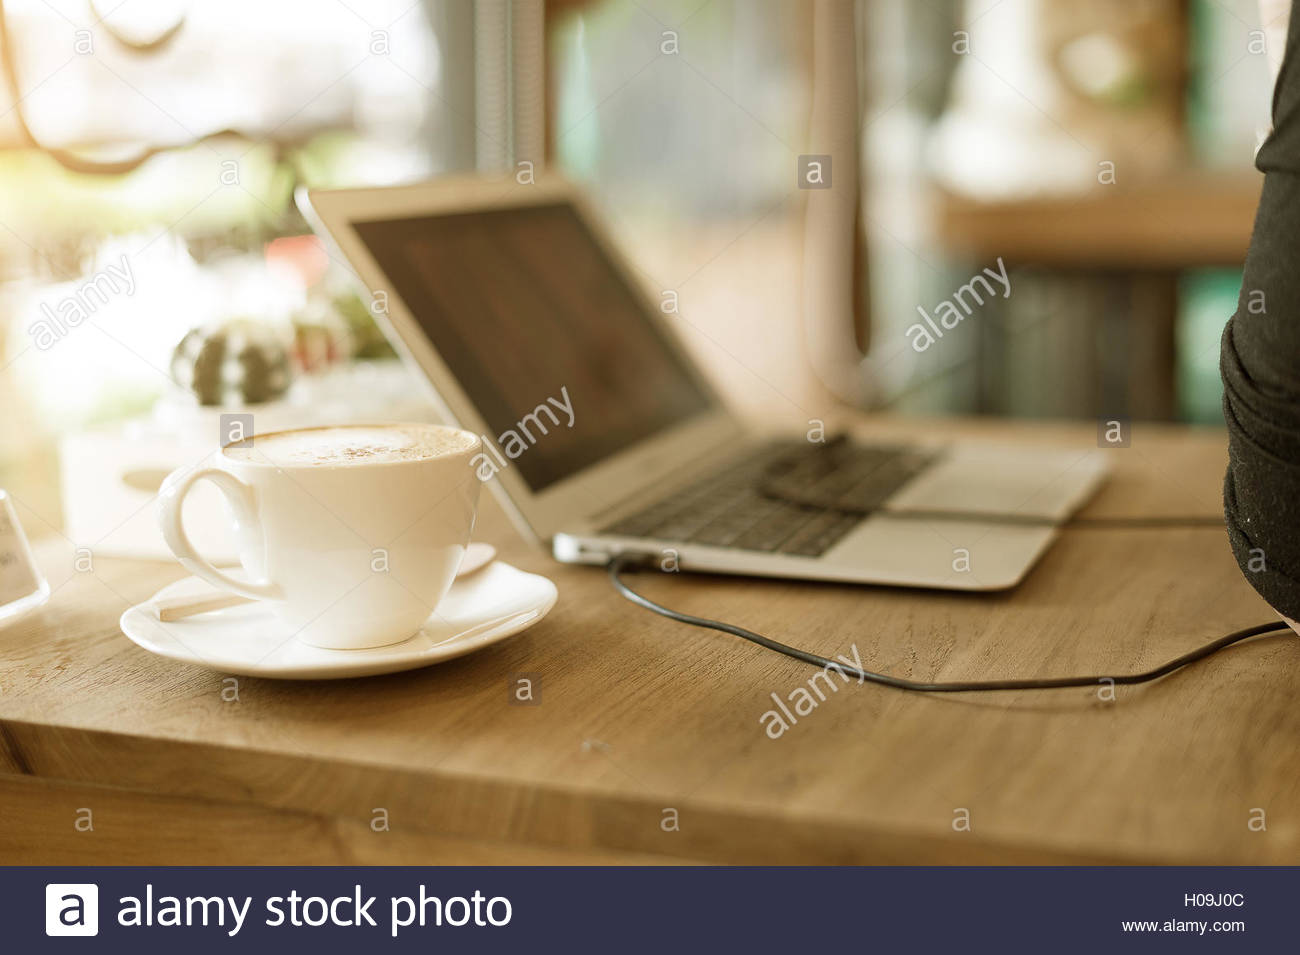 Blue print cafe stock photos blue print cafe stock images alamy blank screen mobile phone with matcha green tea and laptop computer on wooden table and soft malvernweather Gallery